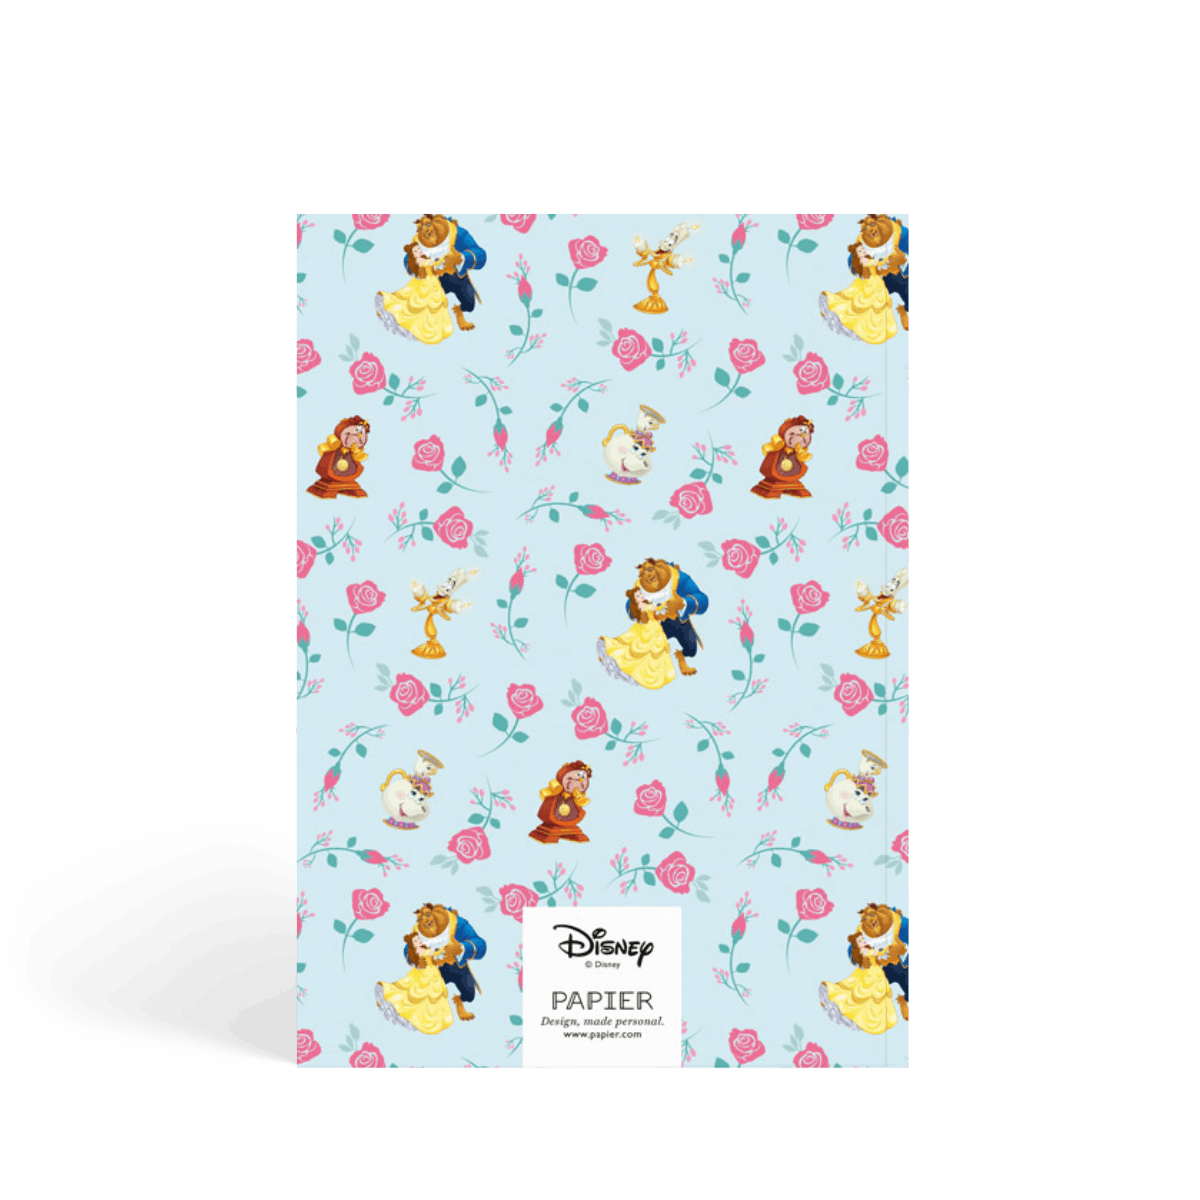 Https%3a%2f%2fwww.papier.com%2fproduct image%2f41955%2f5%2fbeauty the beast 10693 back 1532351306.png?ixlib=rb 1.1